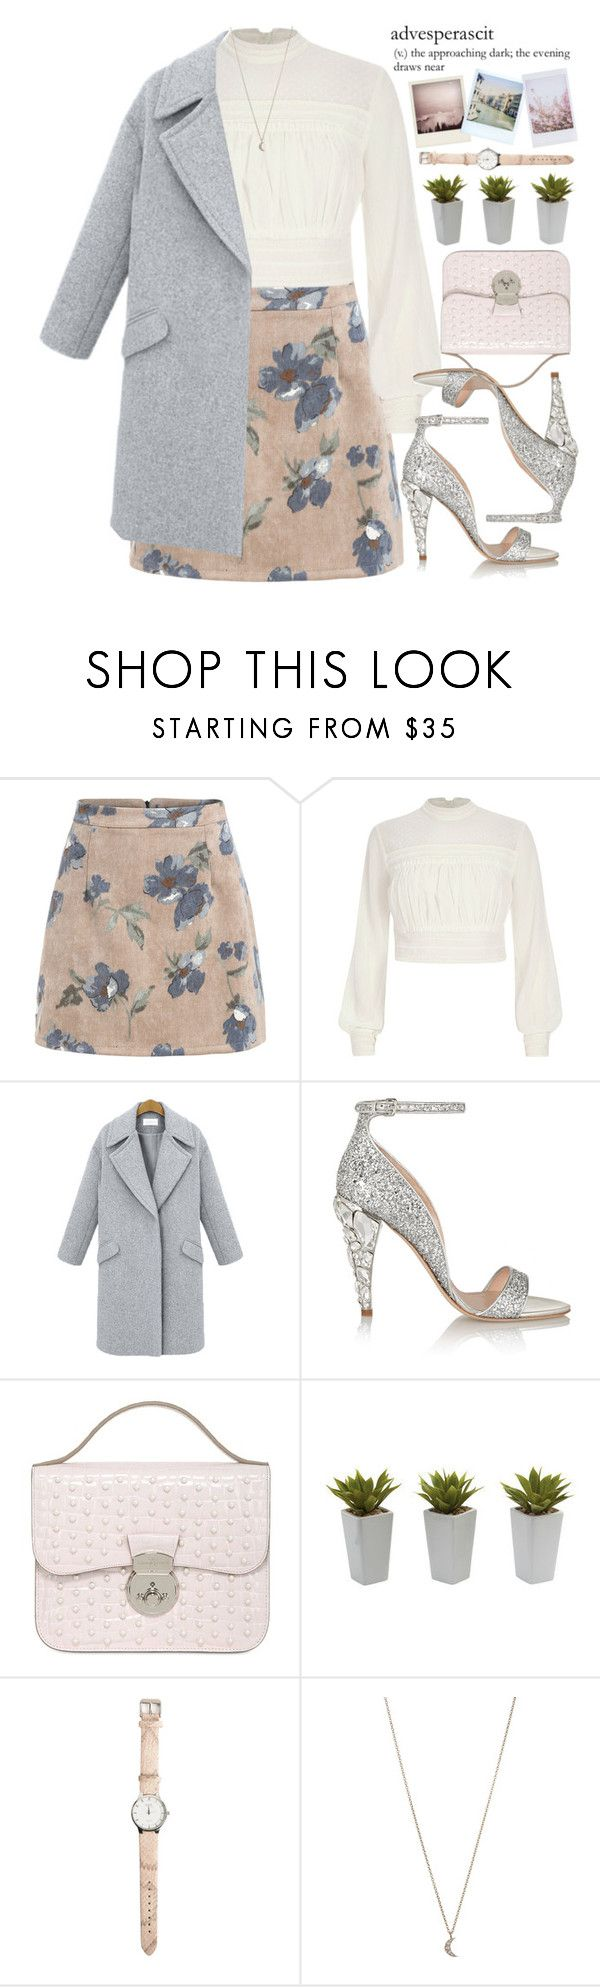 """""""Advesperacit"""" by mihreta-m ❤ liked on Polyvore featuring River Island, Miu Miu, Azzurra Gronchi, Nearly Natural and Minor Obsessions"""